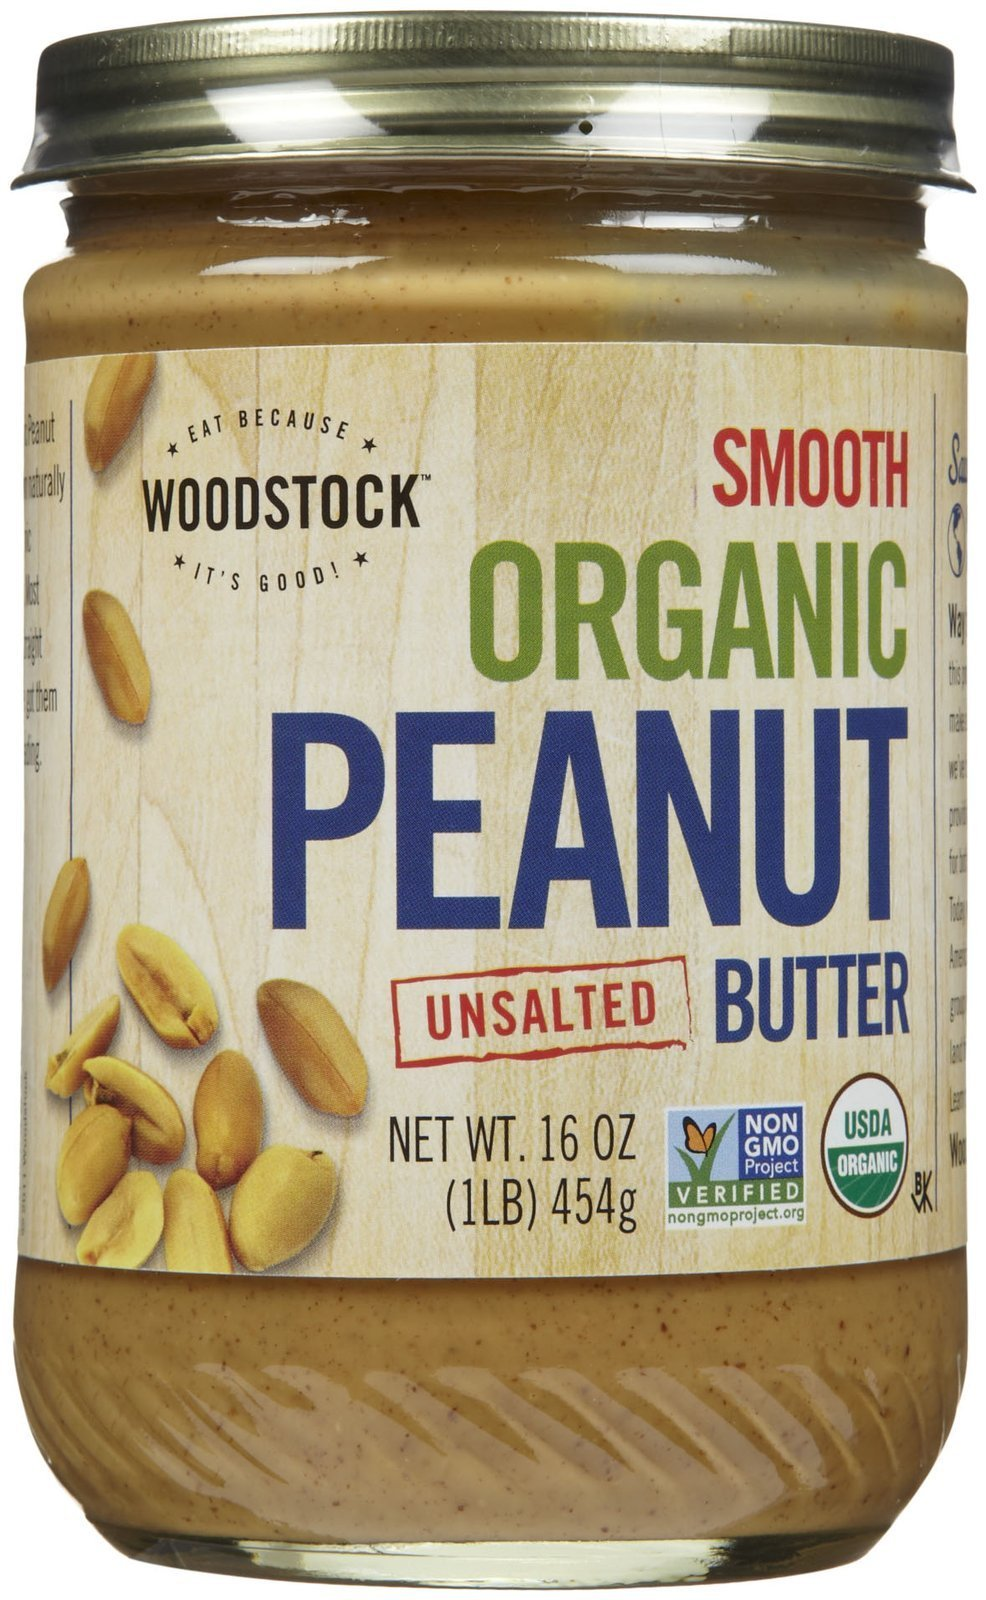 Woodstock Smooth Organic Peanut Butter Unsalted by Woodstock Farms